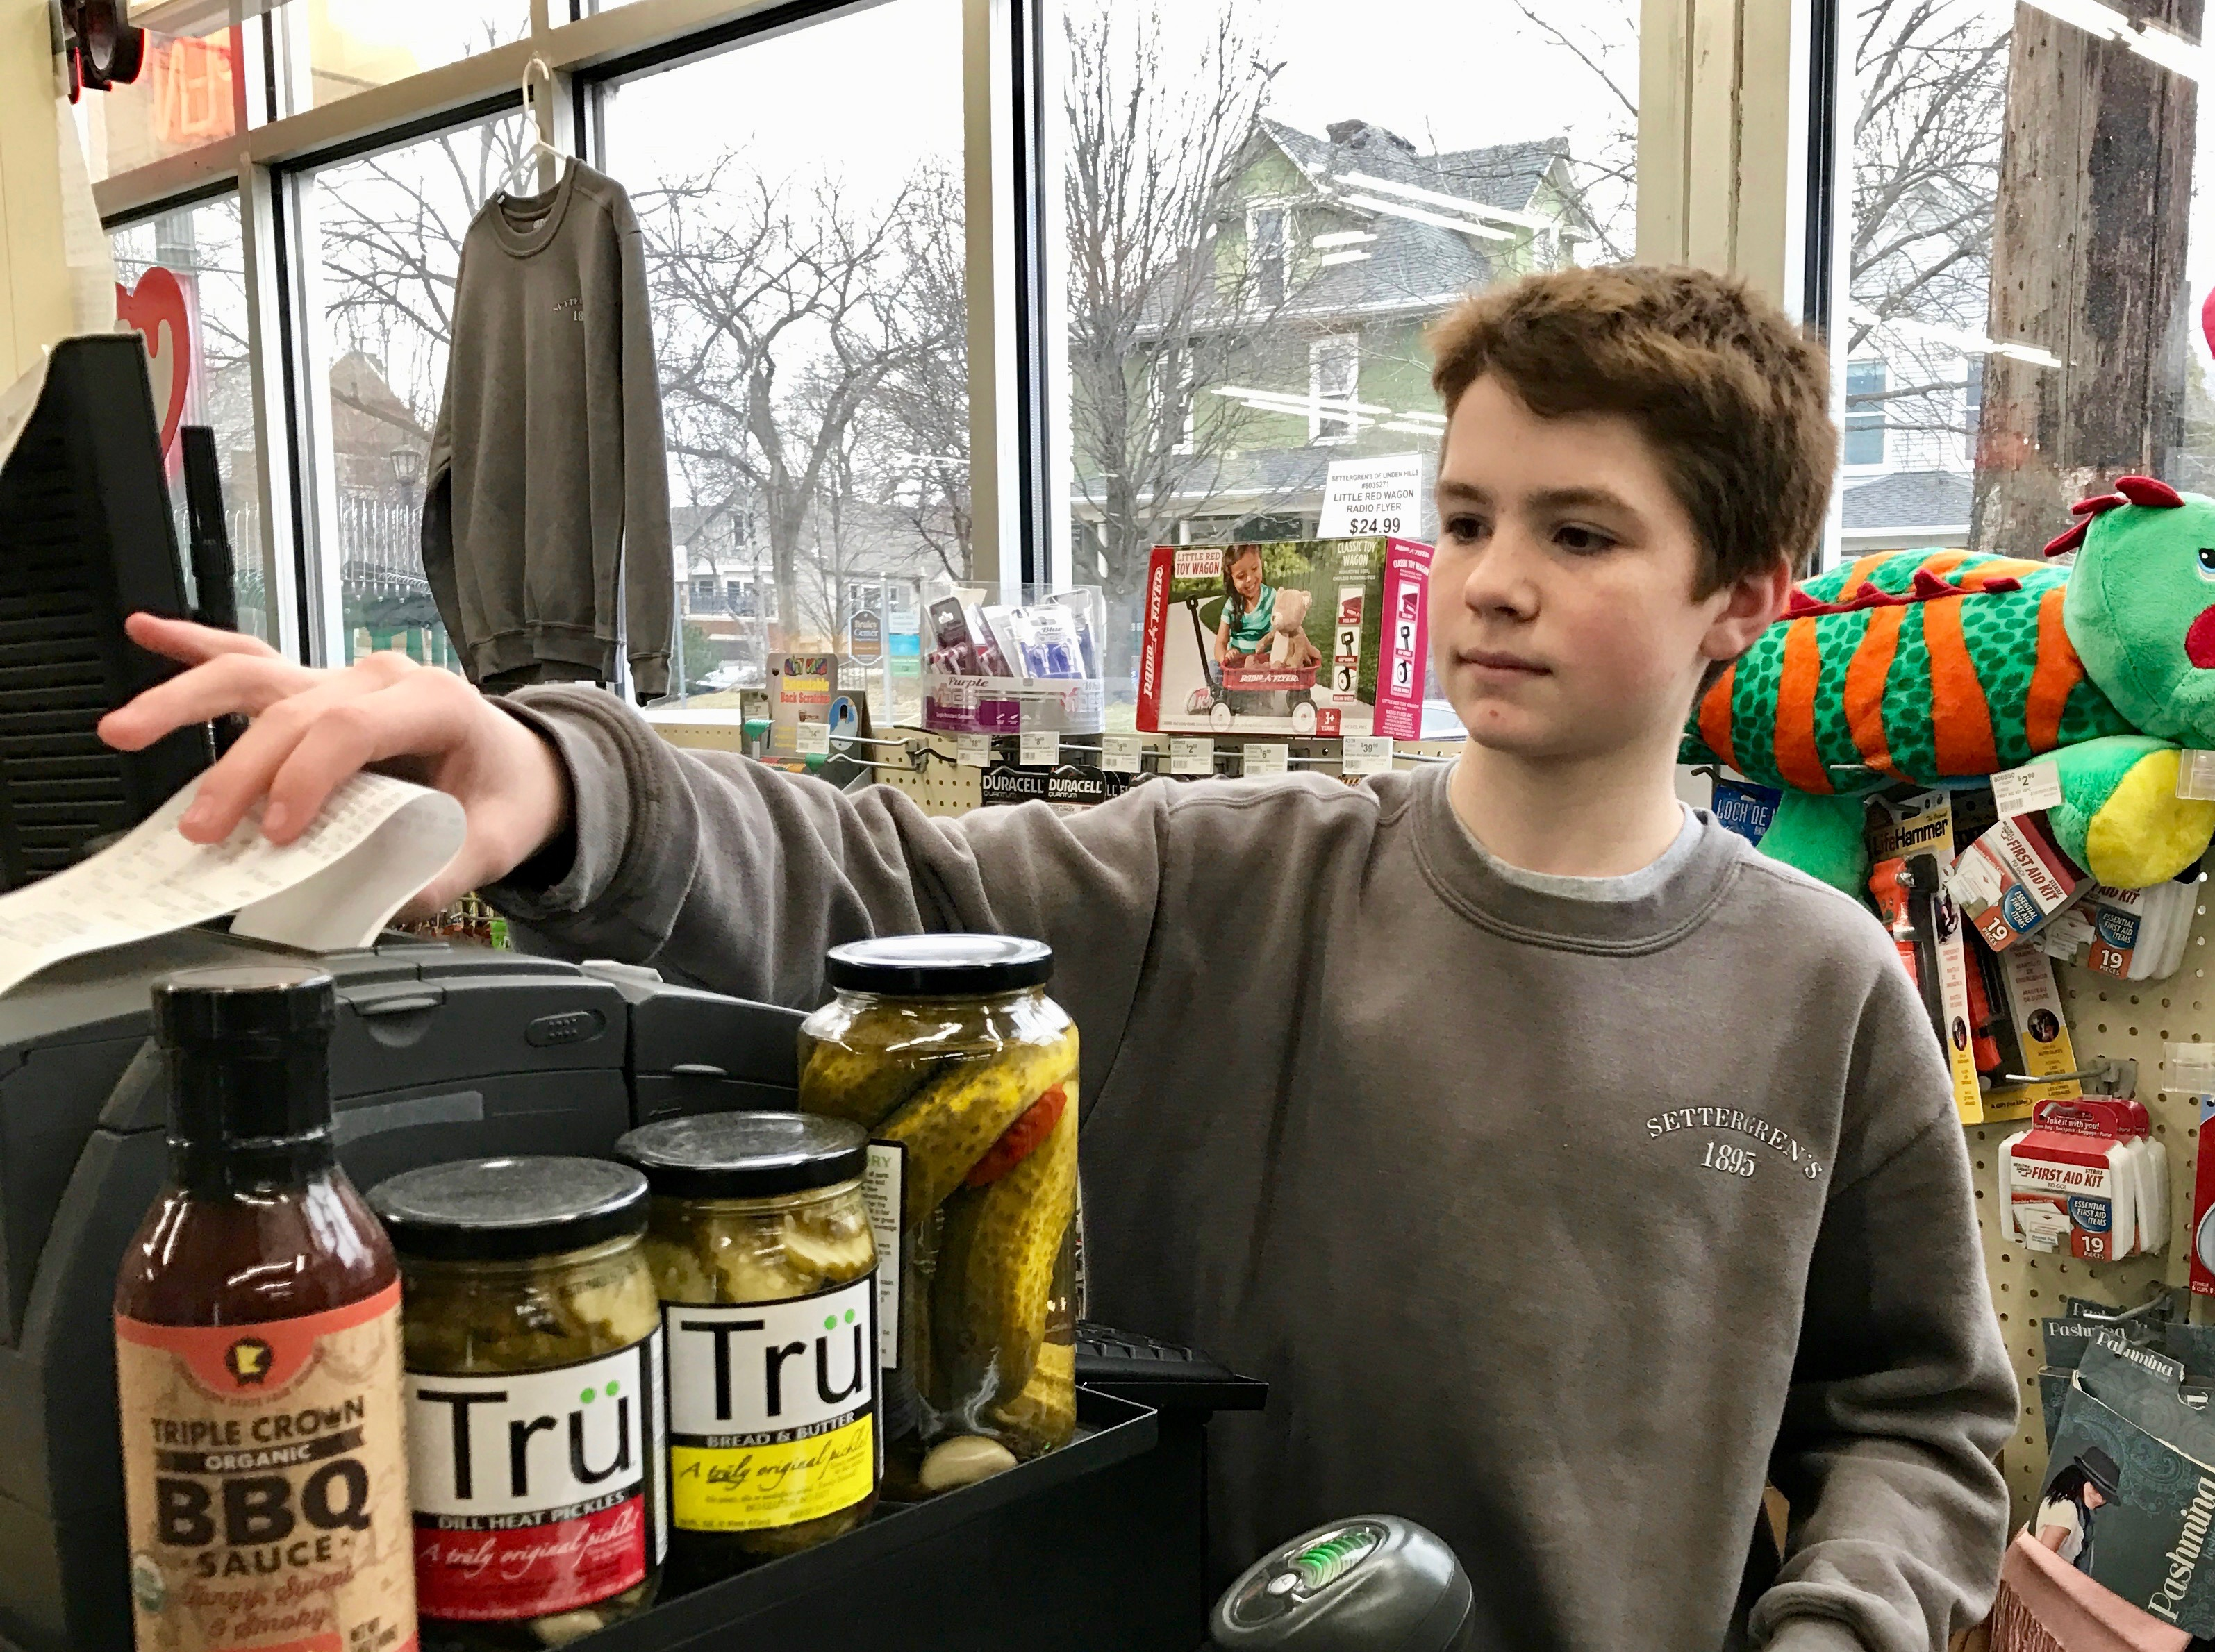 Fifteen-year-old Will Berlin works the cash register at Settergren Ace Hardware in Linden Hills. Businesses in Minneapolis are mulling over how a $15 minimum wage would affect their ability to hire youth workers. Photo by Nate Gotlieb